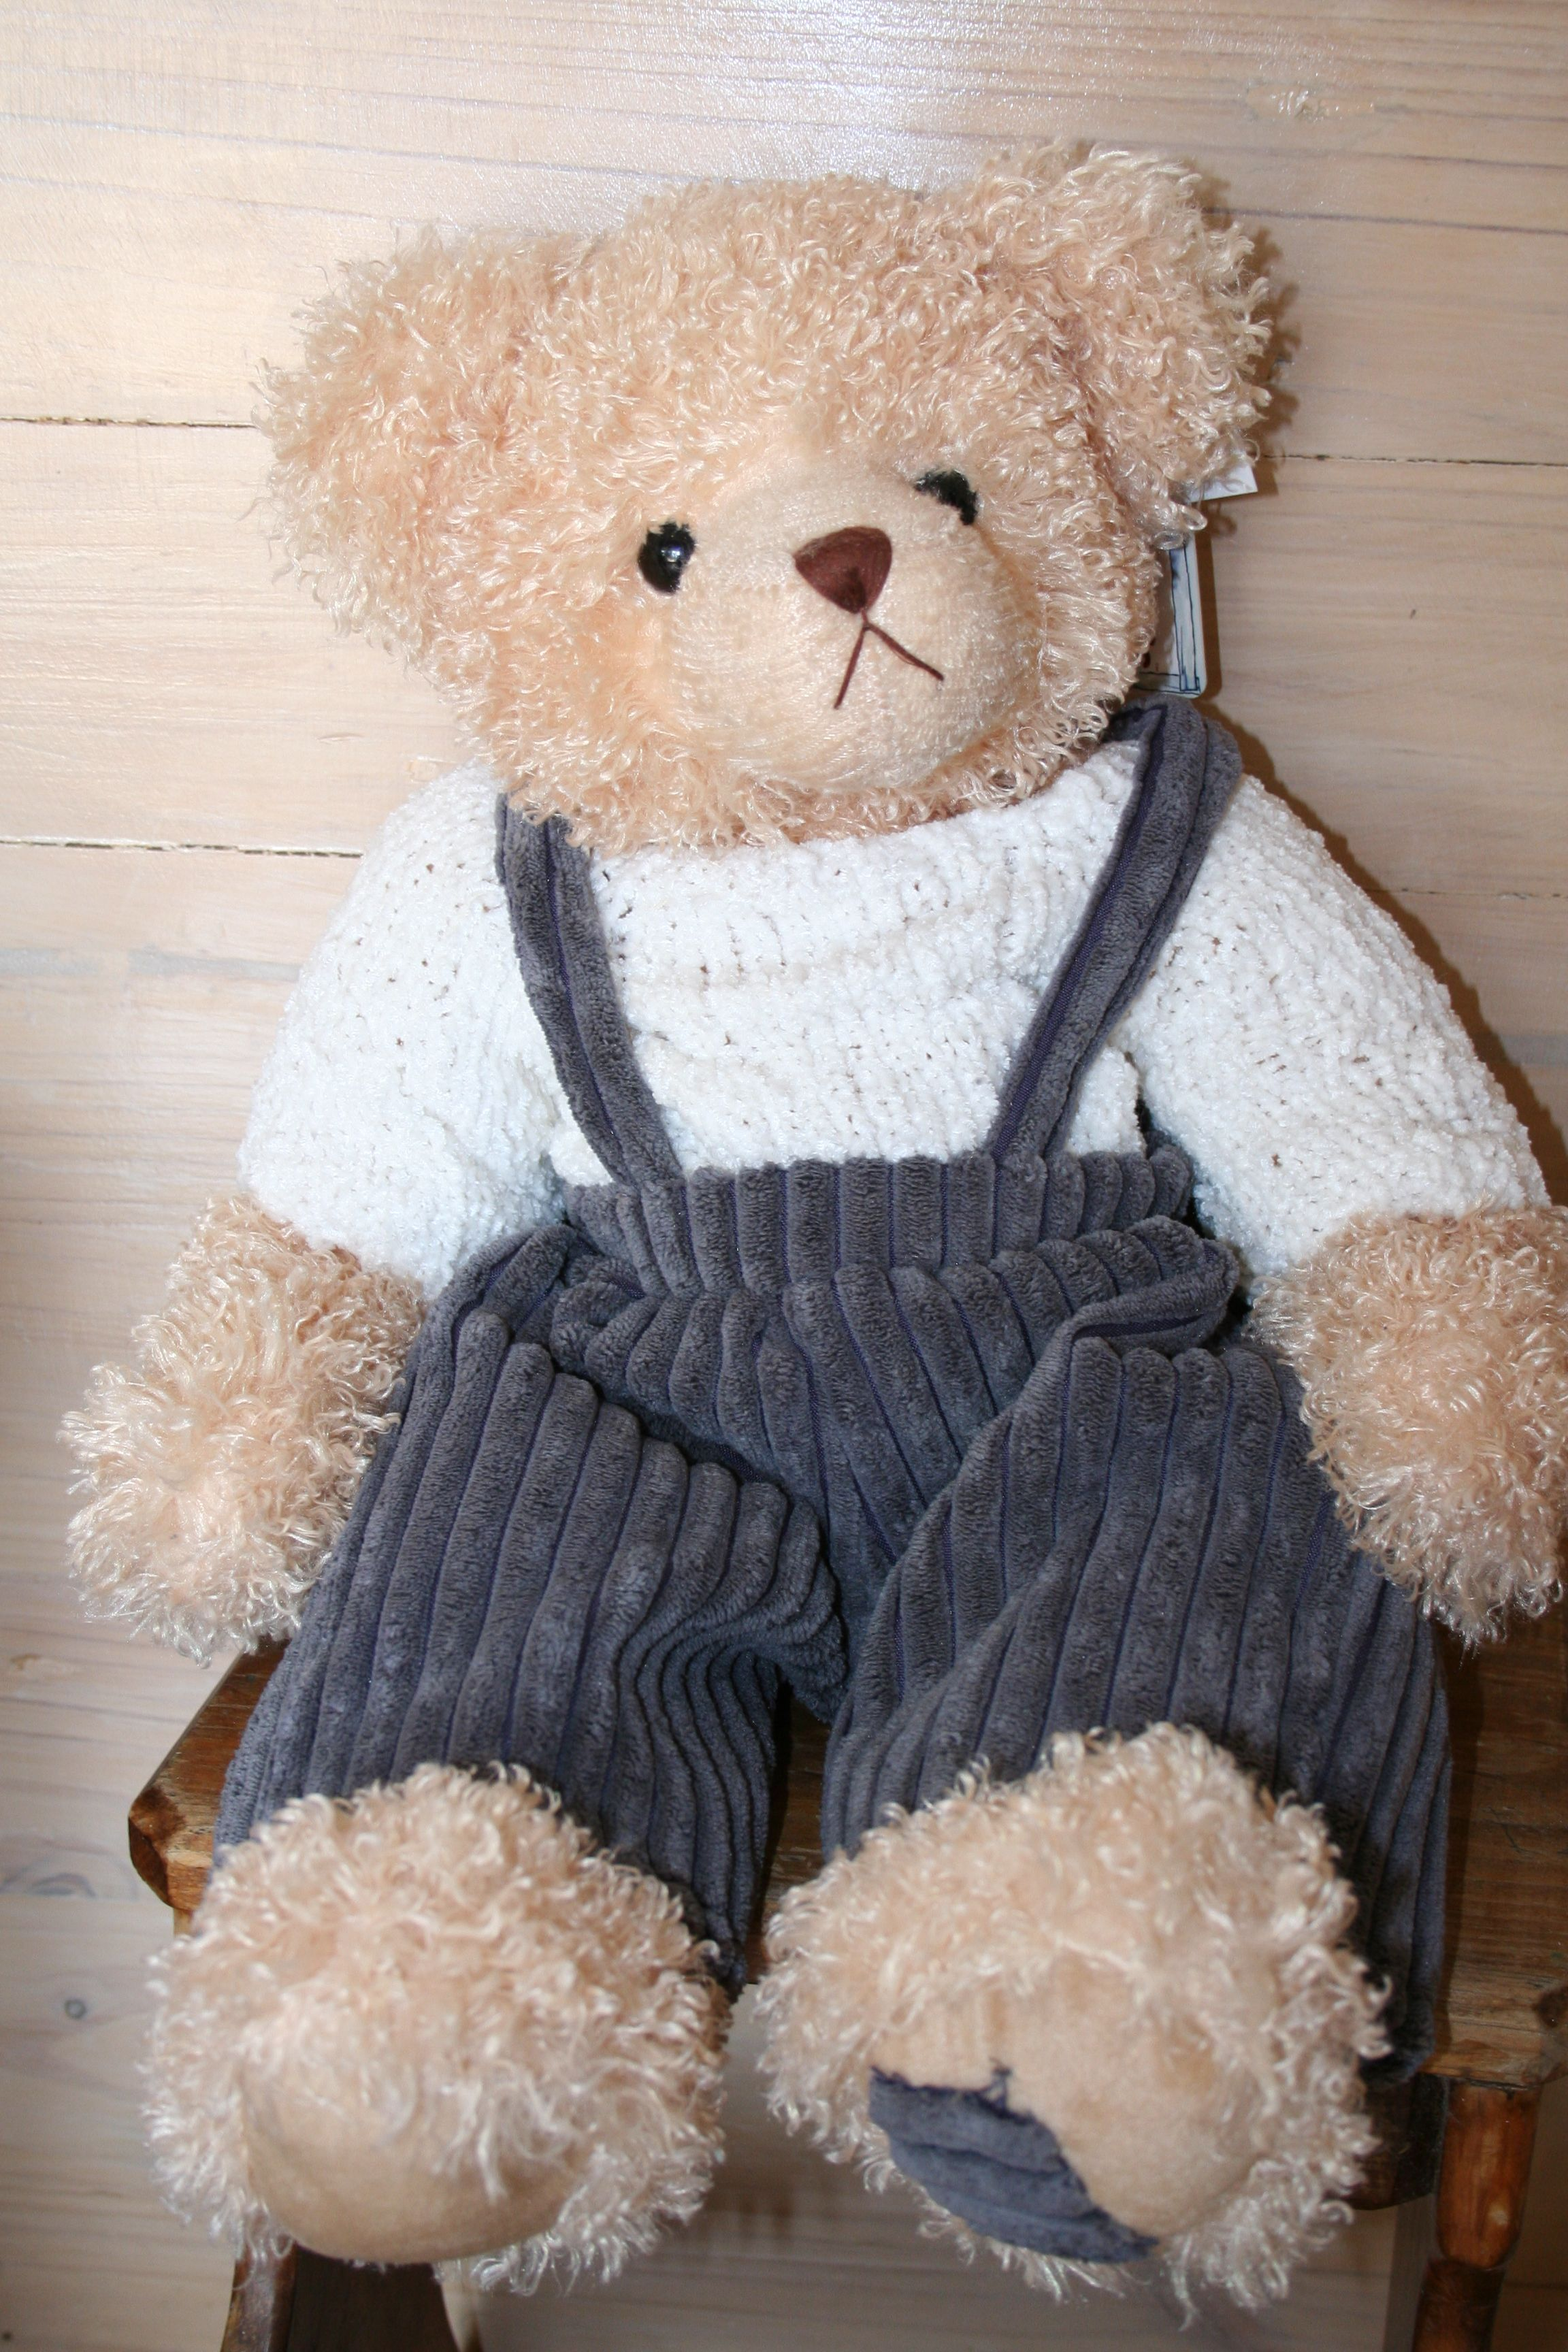 """HARRY is """"one of the BOYS"""" from Settler Bears Boronia collection.  He has gorgeous curly fur and dressed for FUN.  Price A$96.75 SHIP WORLDWIDE Email: mailto:toodledoo@bigpond.com www.settlerbearsaustralia.com.au,  Mobile: 0433 253 800  Toodle Doo - the MAGIC place to shop!"""